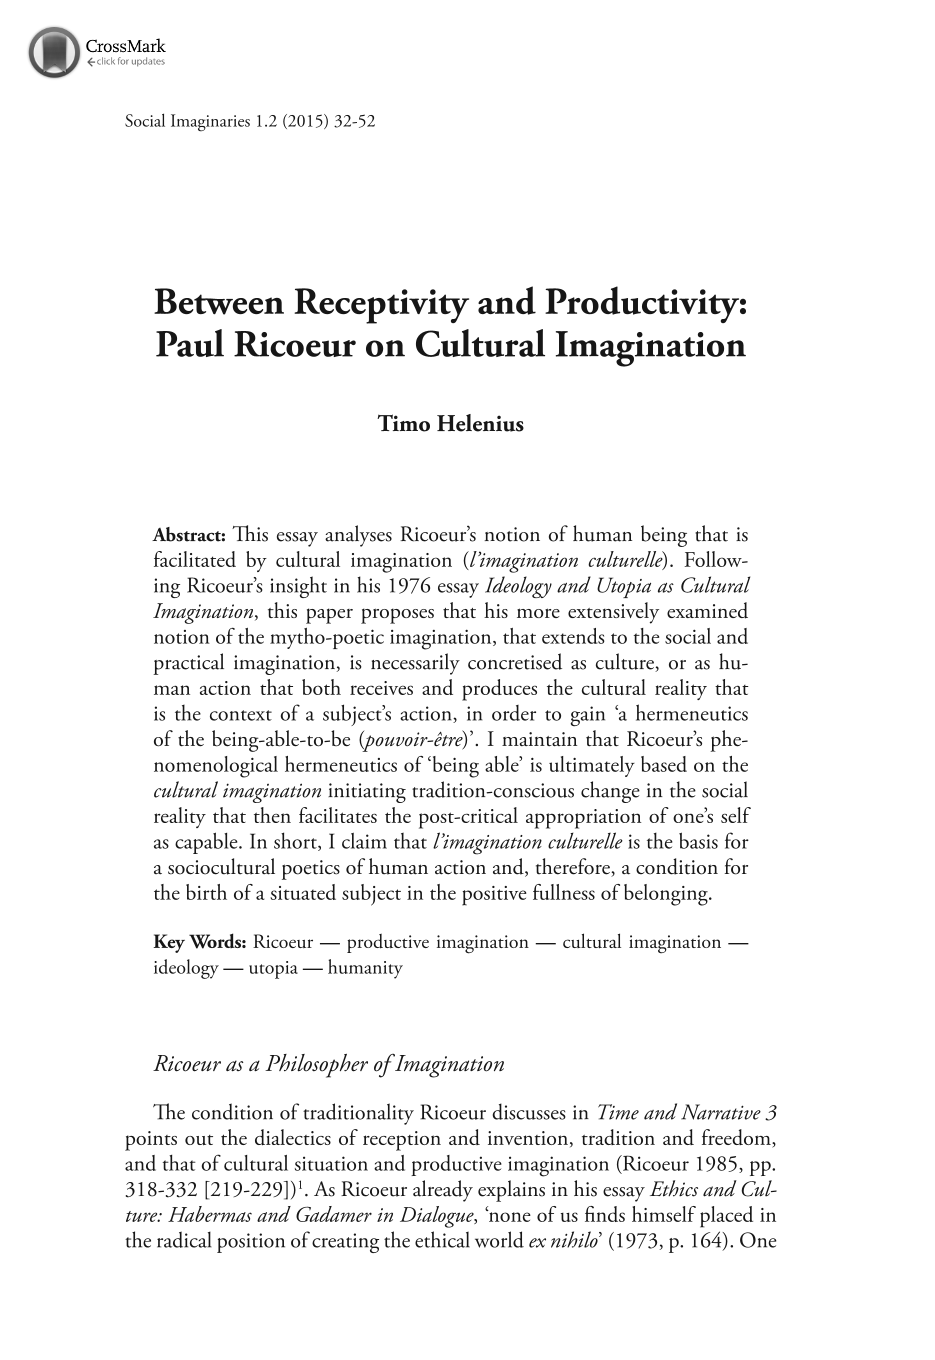 Sample Of English Essay Between Receptivity And Productivity Paul Ricoeur On Cultural Document Is  Being Loaded Science Essays Topics also Japanese Essay Paper Social Imagination Essay Between Receptivity And Productivity Paul  High School Entrance Essay Samples